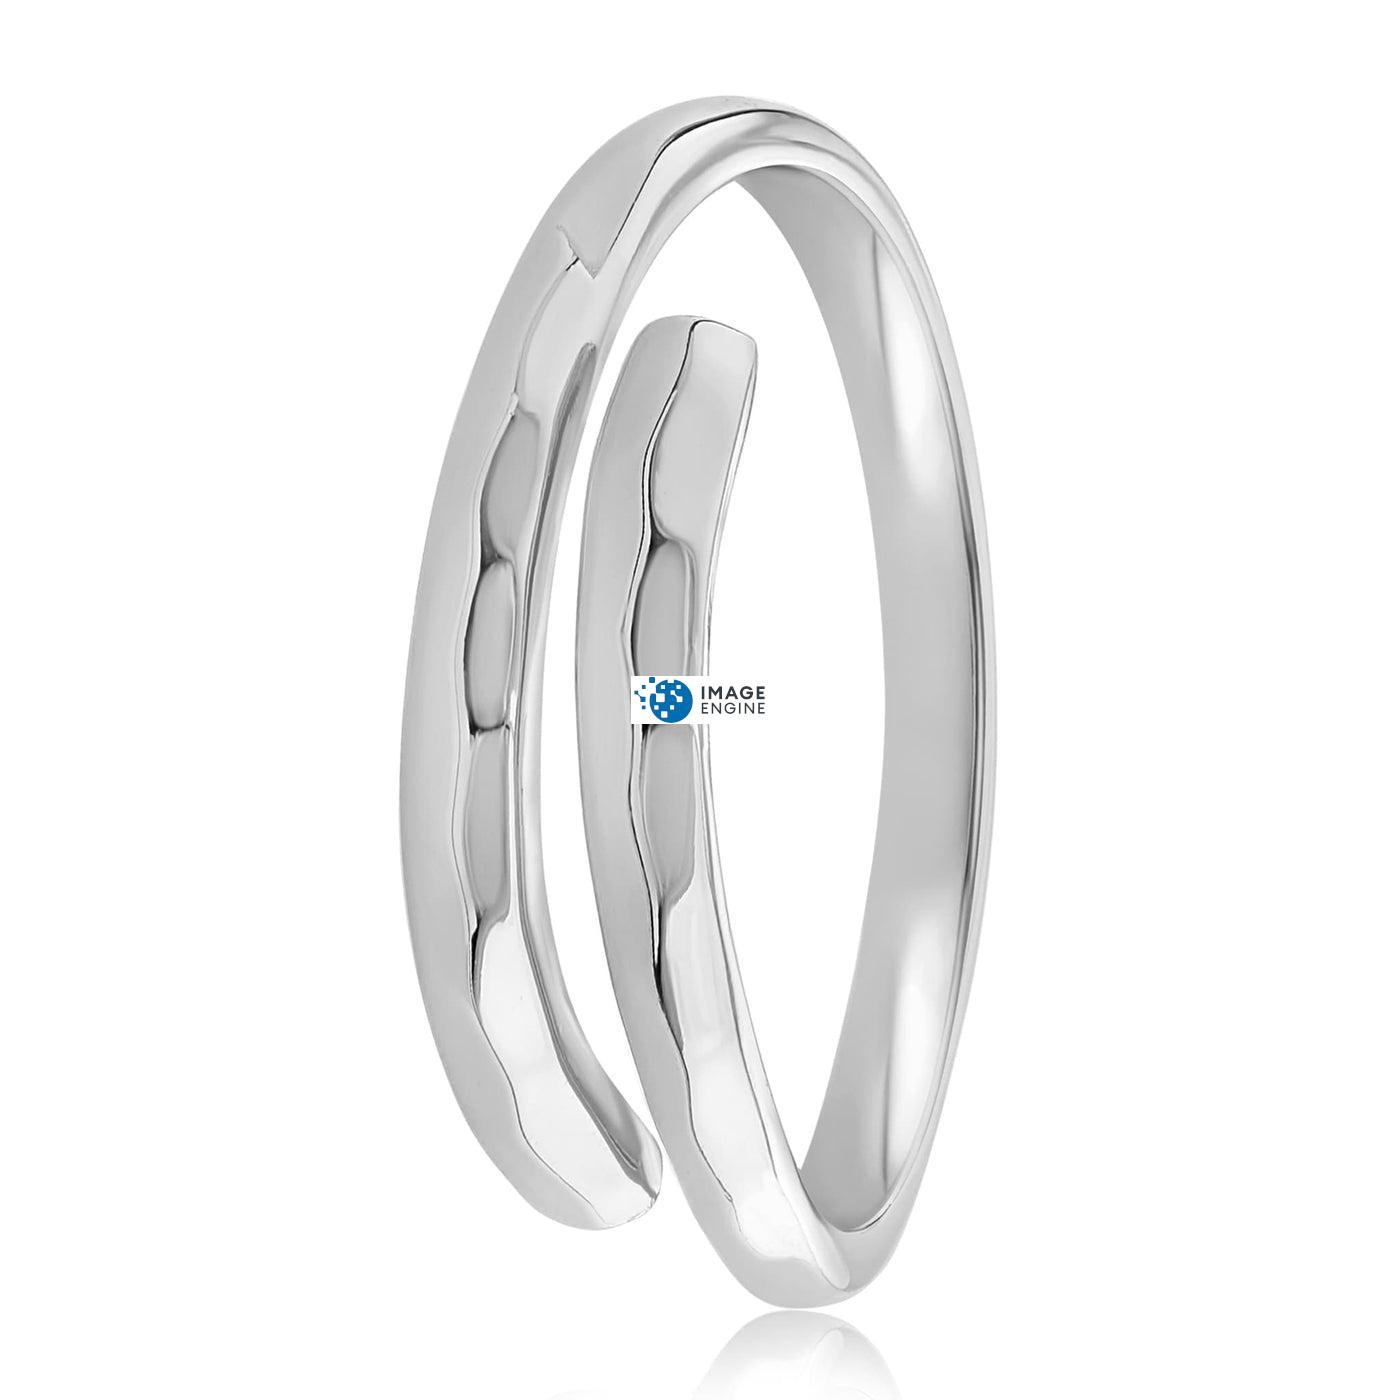 Minimalist Thumb Ring - Side View - 925 Sterling Silver